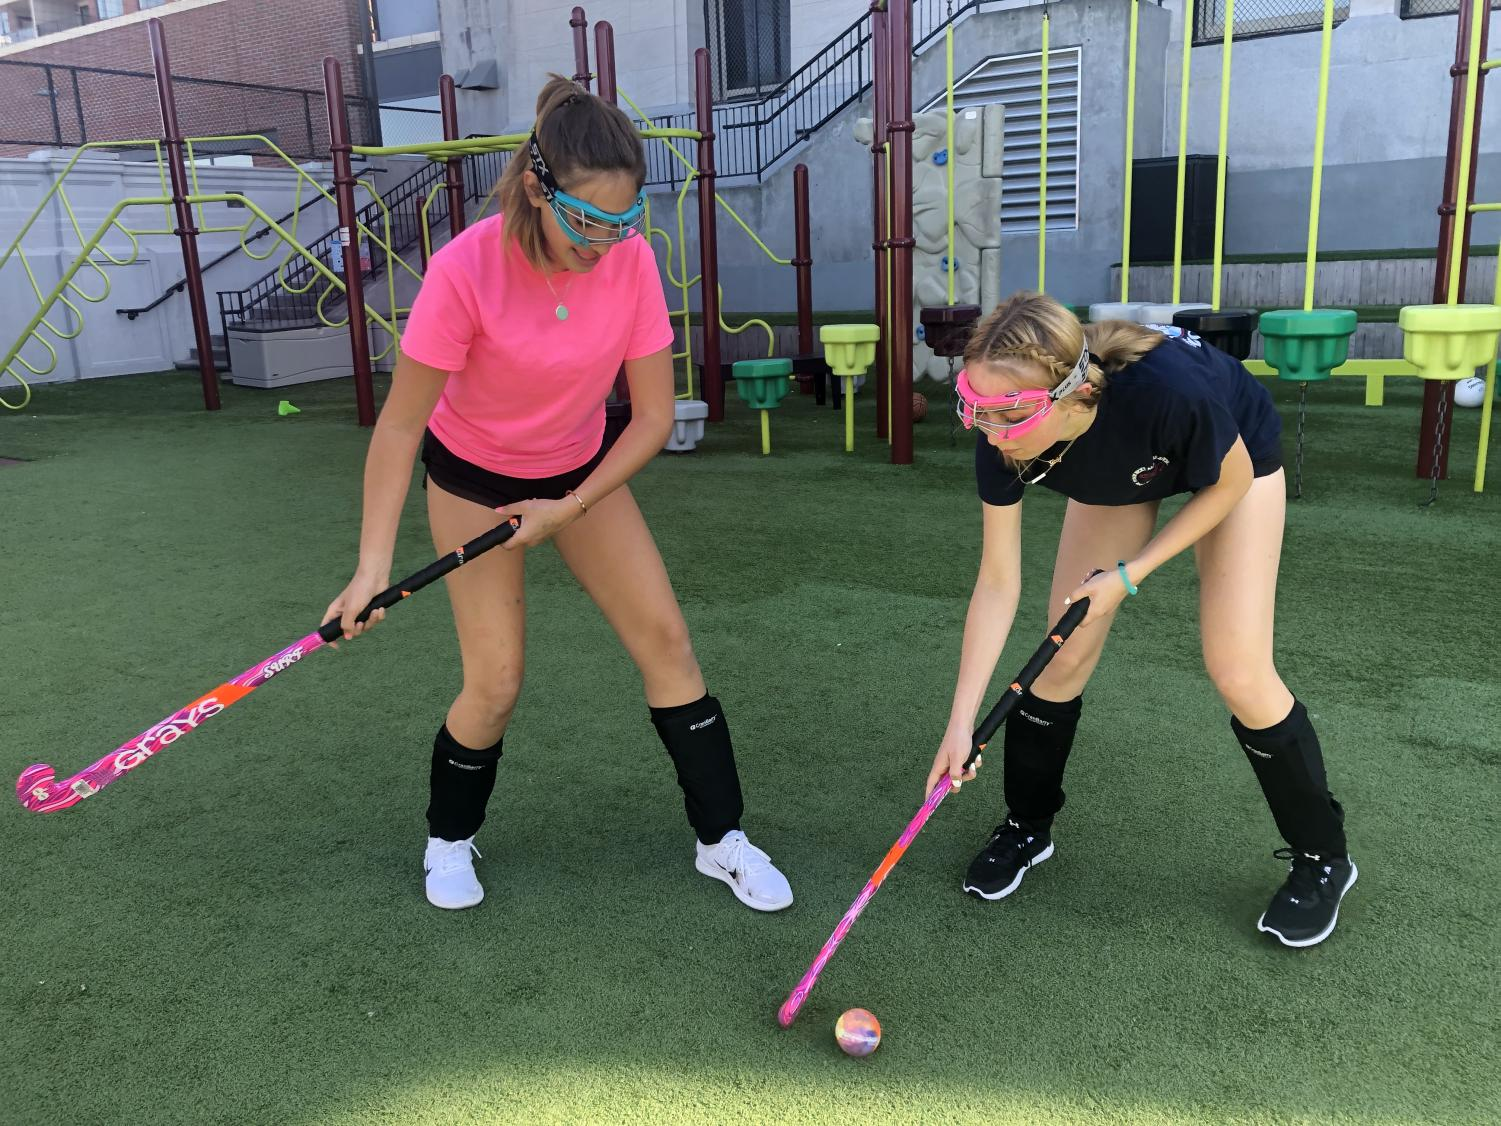 Sophomores Finley Simon and Takohui Asdorian dribble at practice on Syufy Court. Field hockey practices four times a week.